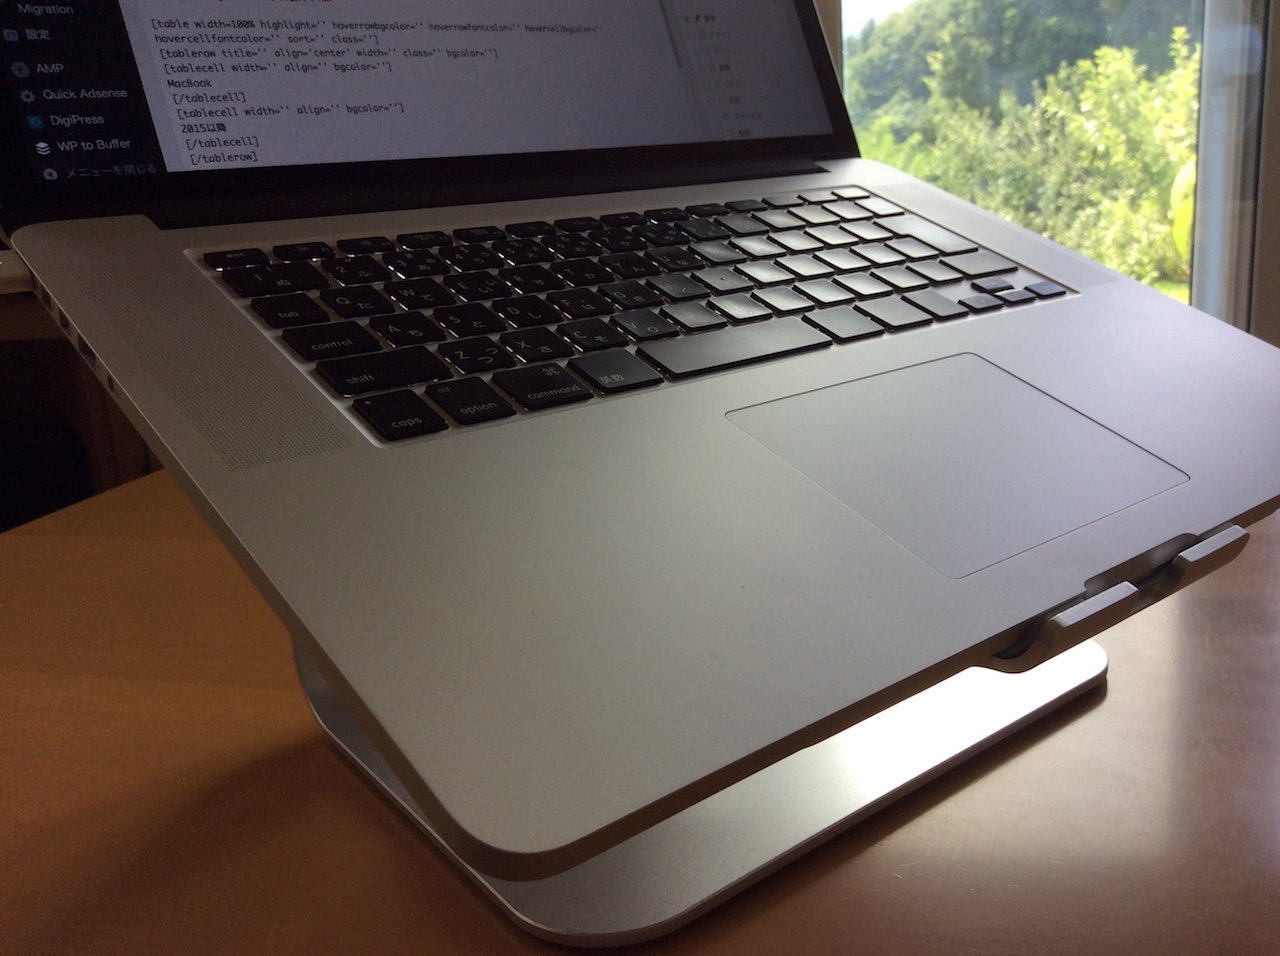 MBP Late 2013